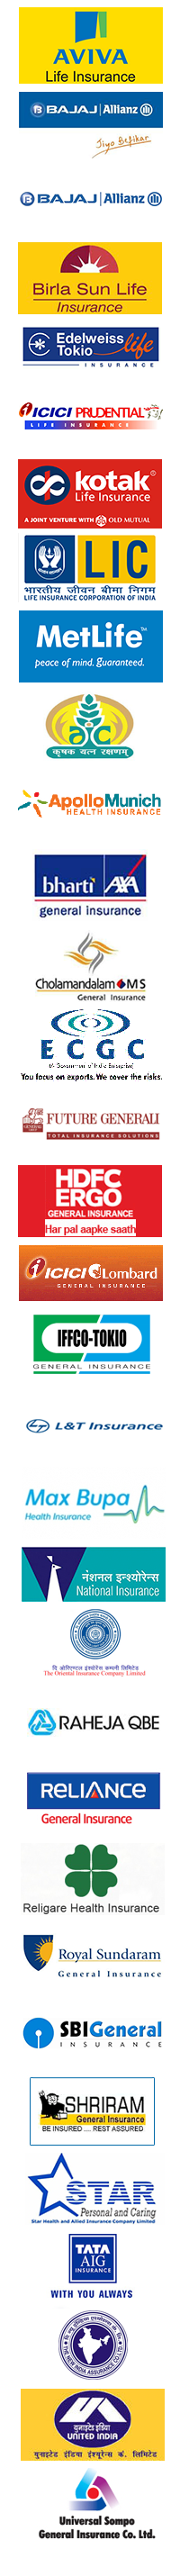 Icici prudential insurance